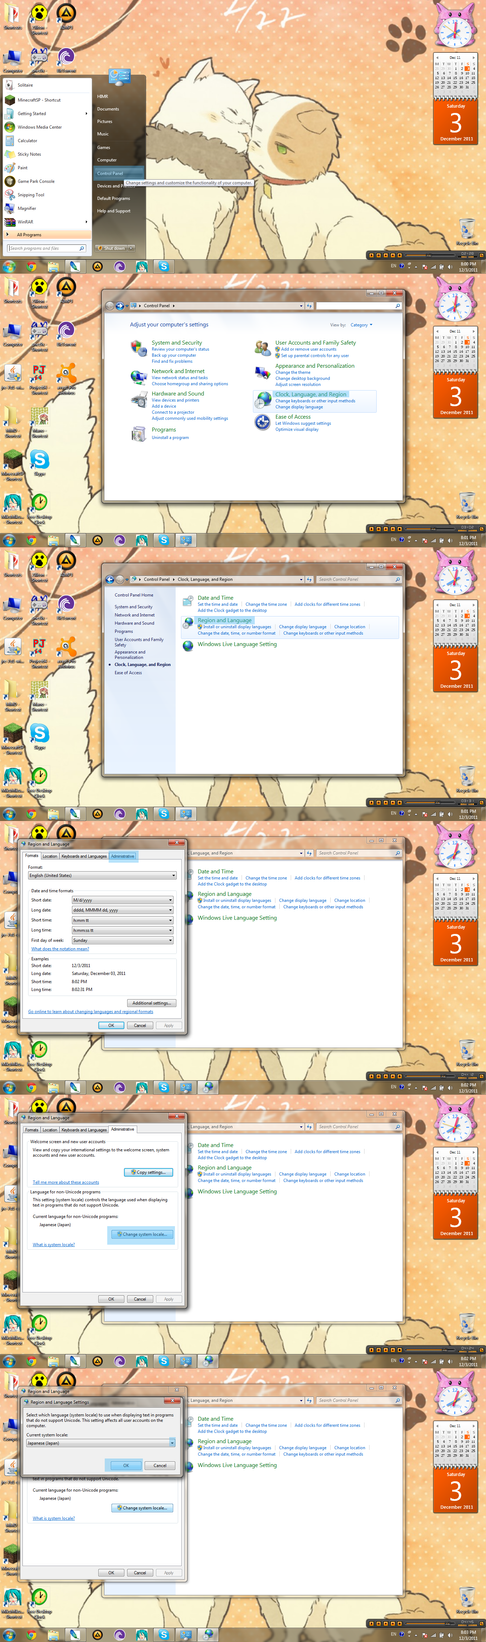 How to change secondary language on Win7 by xXHIMRXx